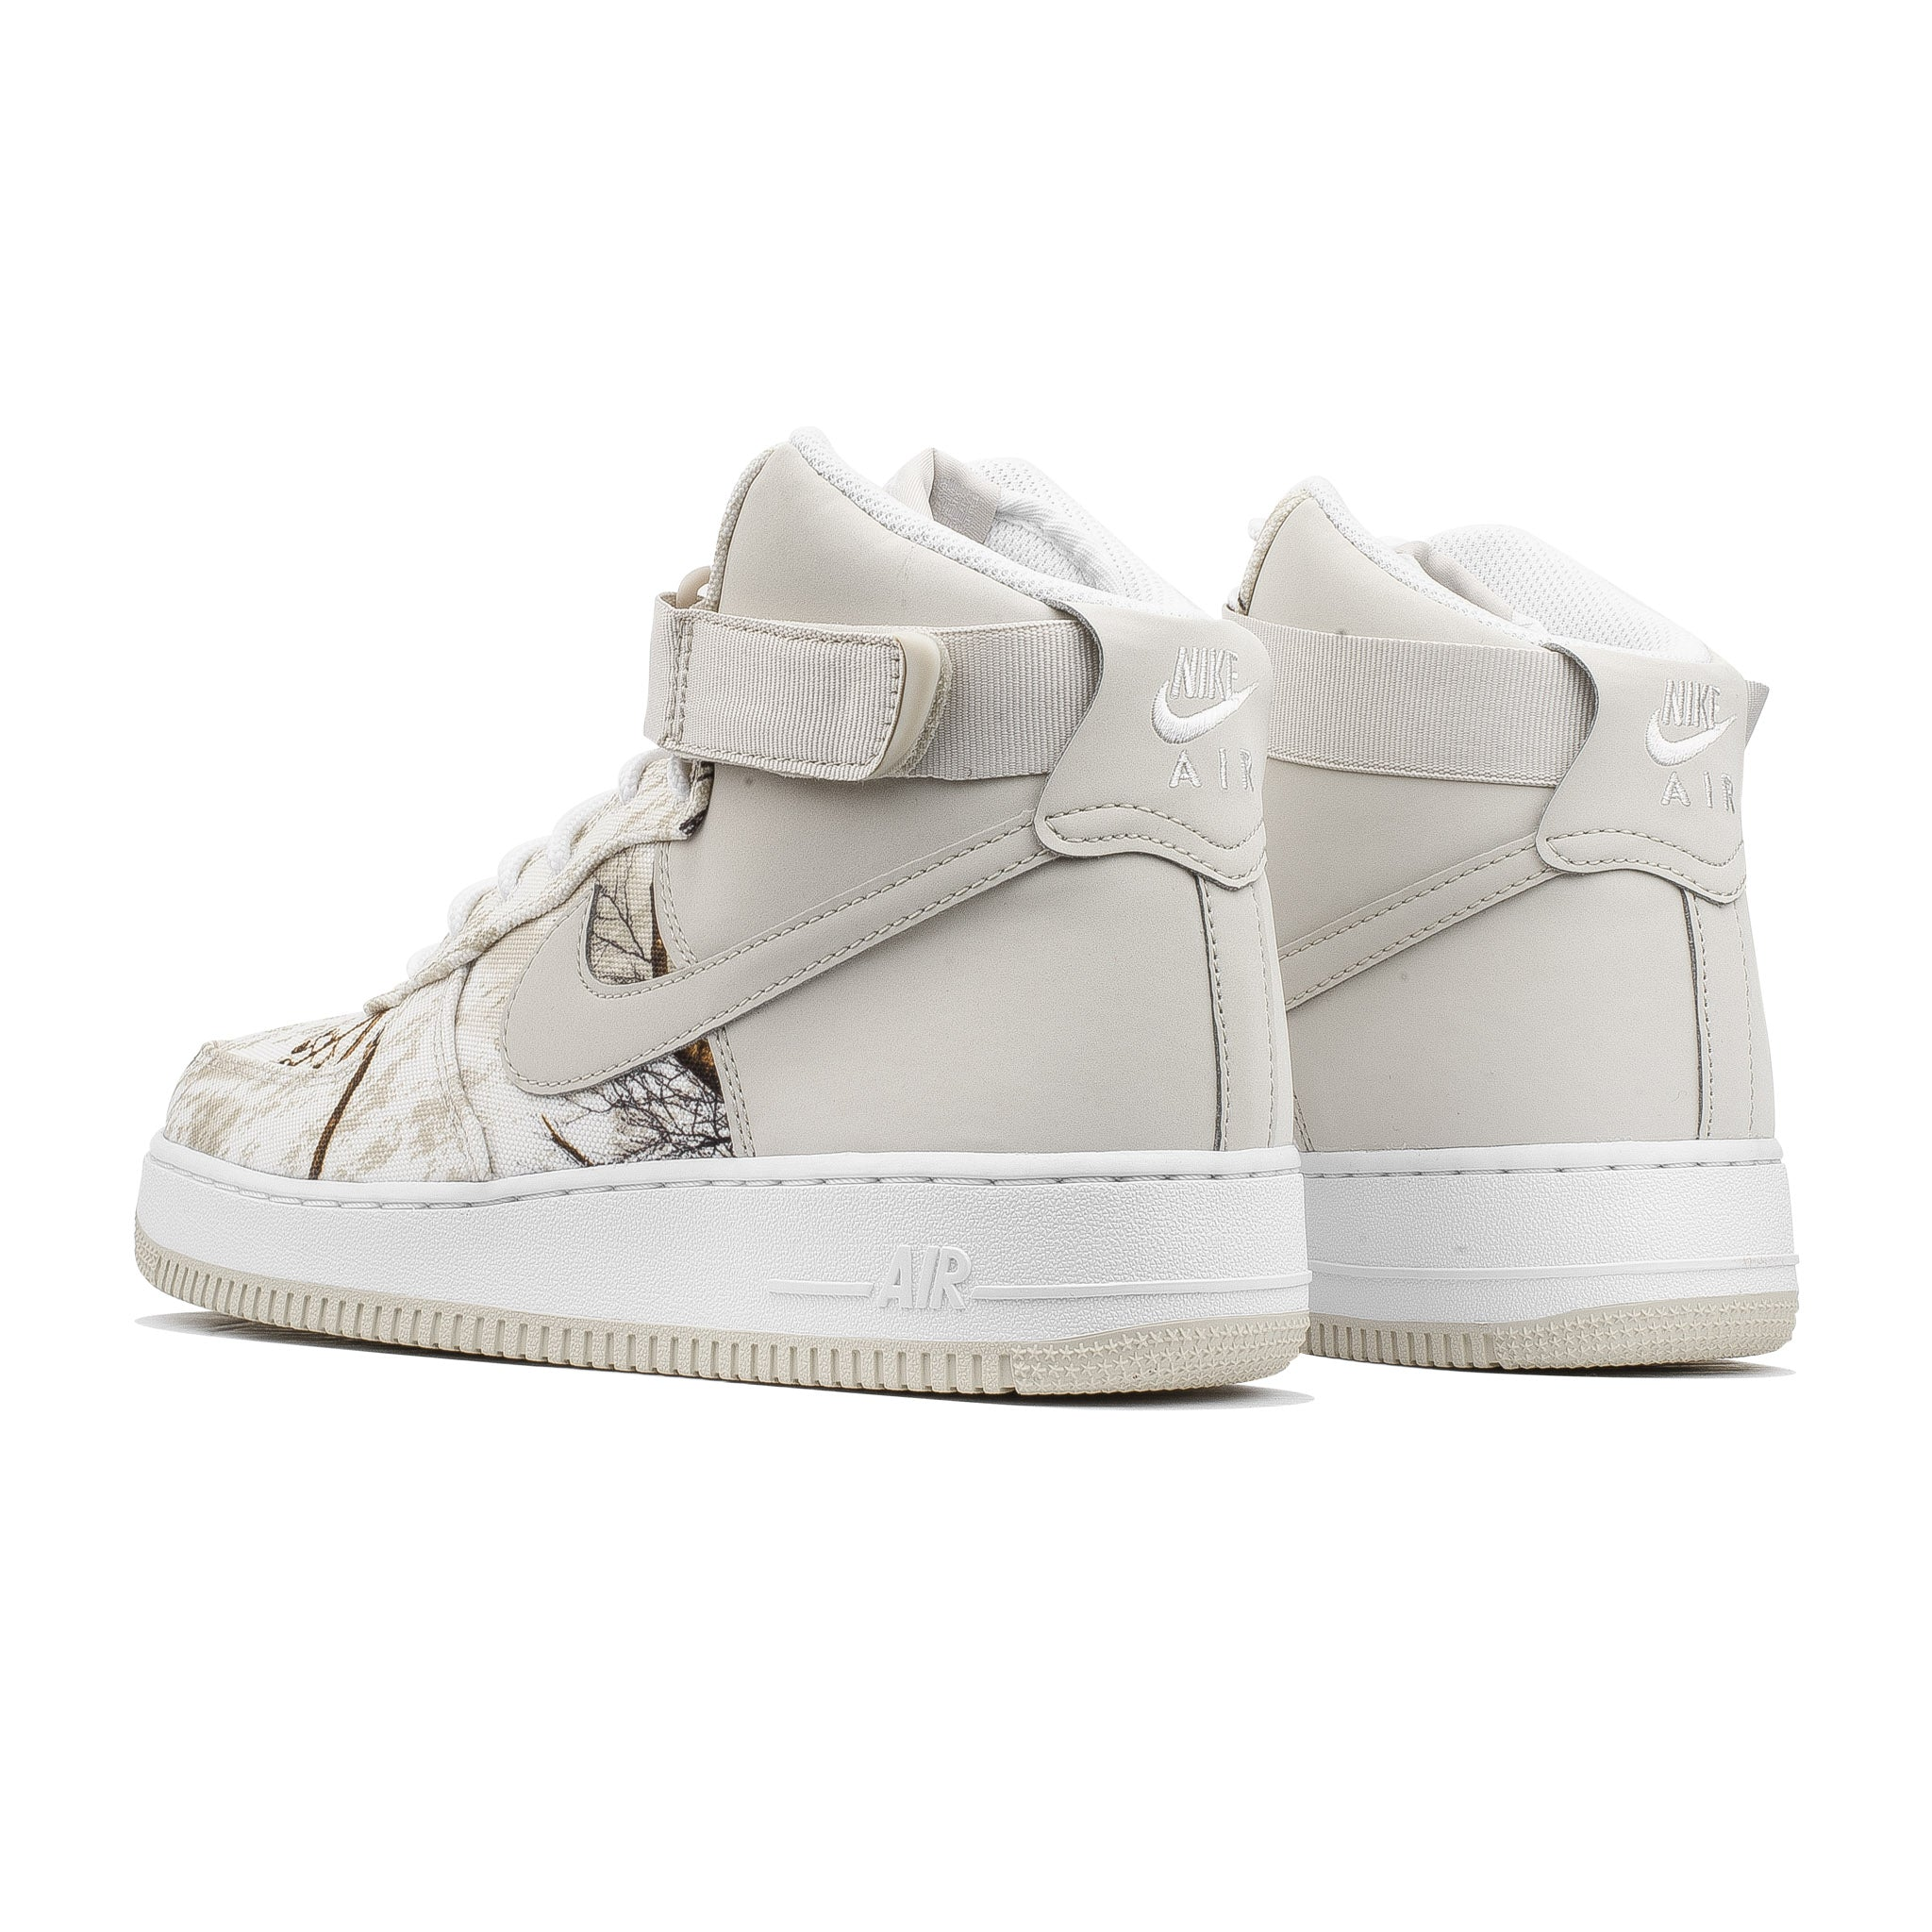 Air Force 1 High '07 LV8 3 AO2410-100 White